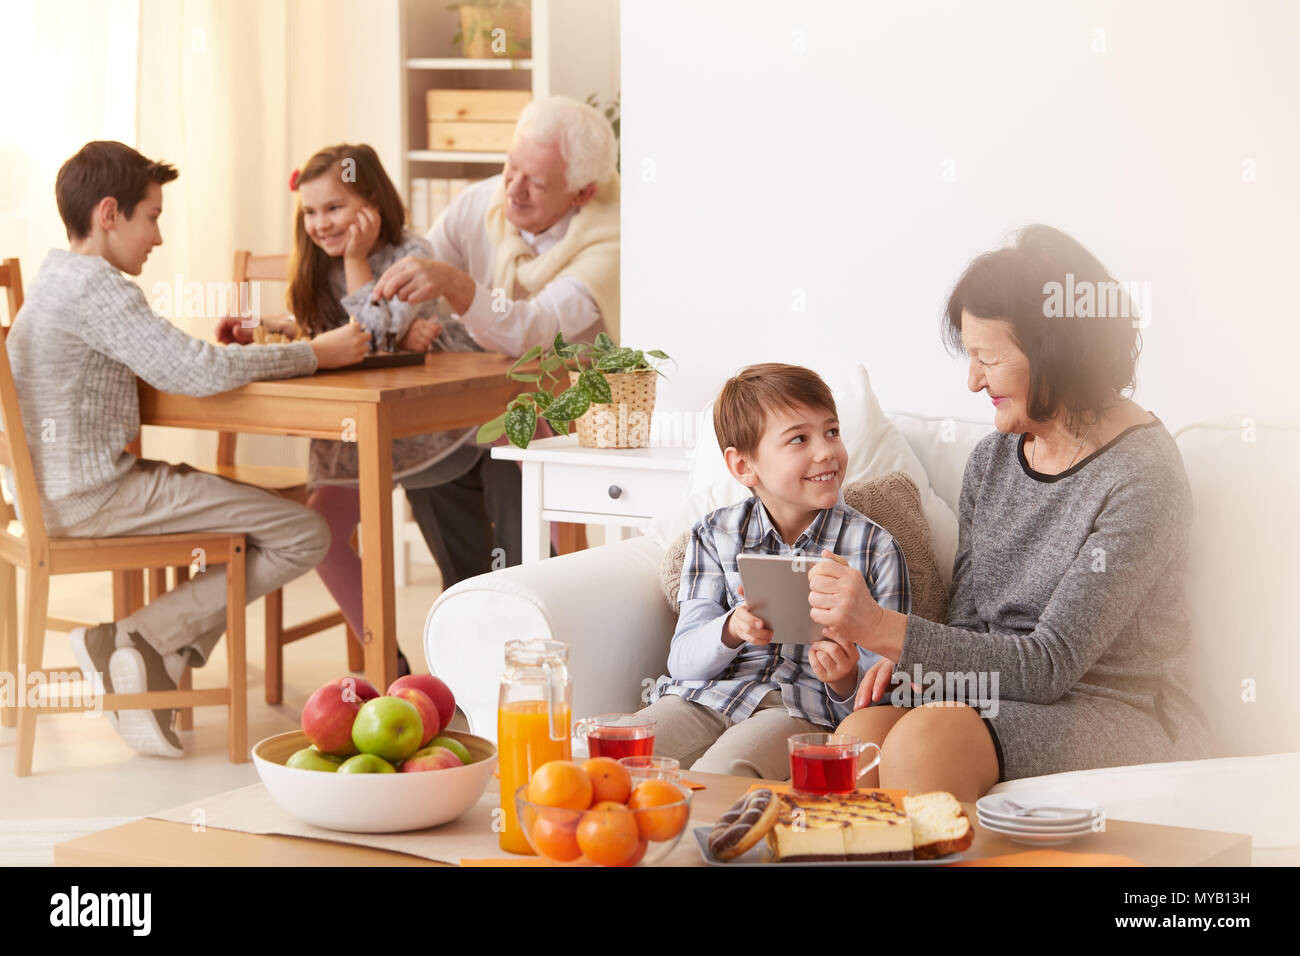 Happy grandchildren visiting their grandparents and spending free time with them - Stock Image